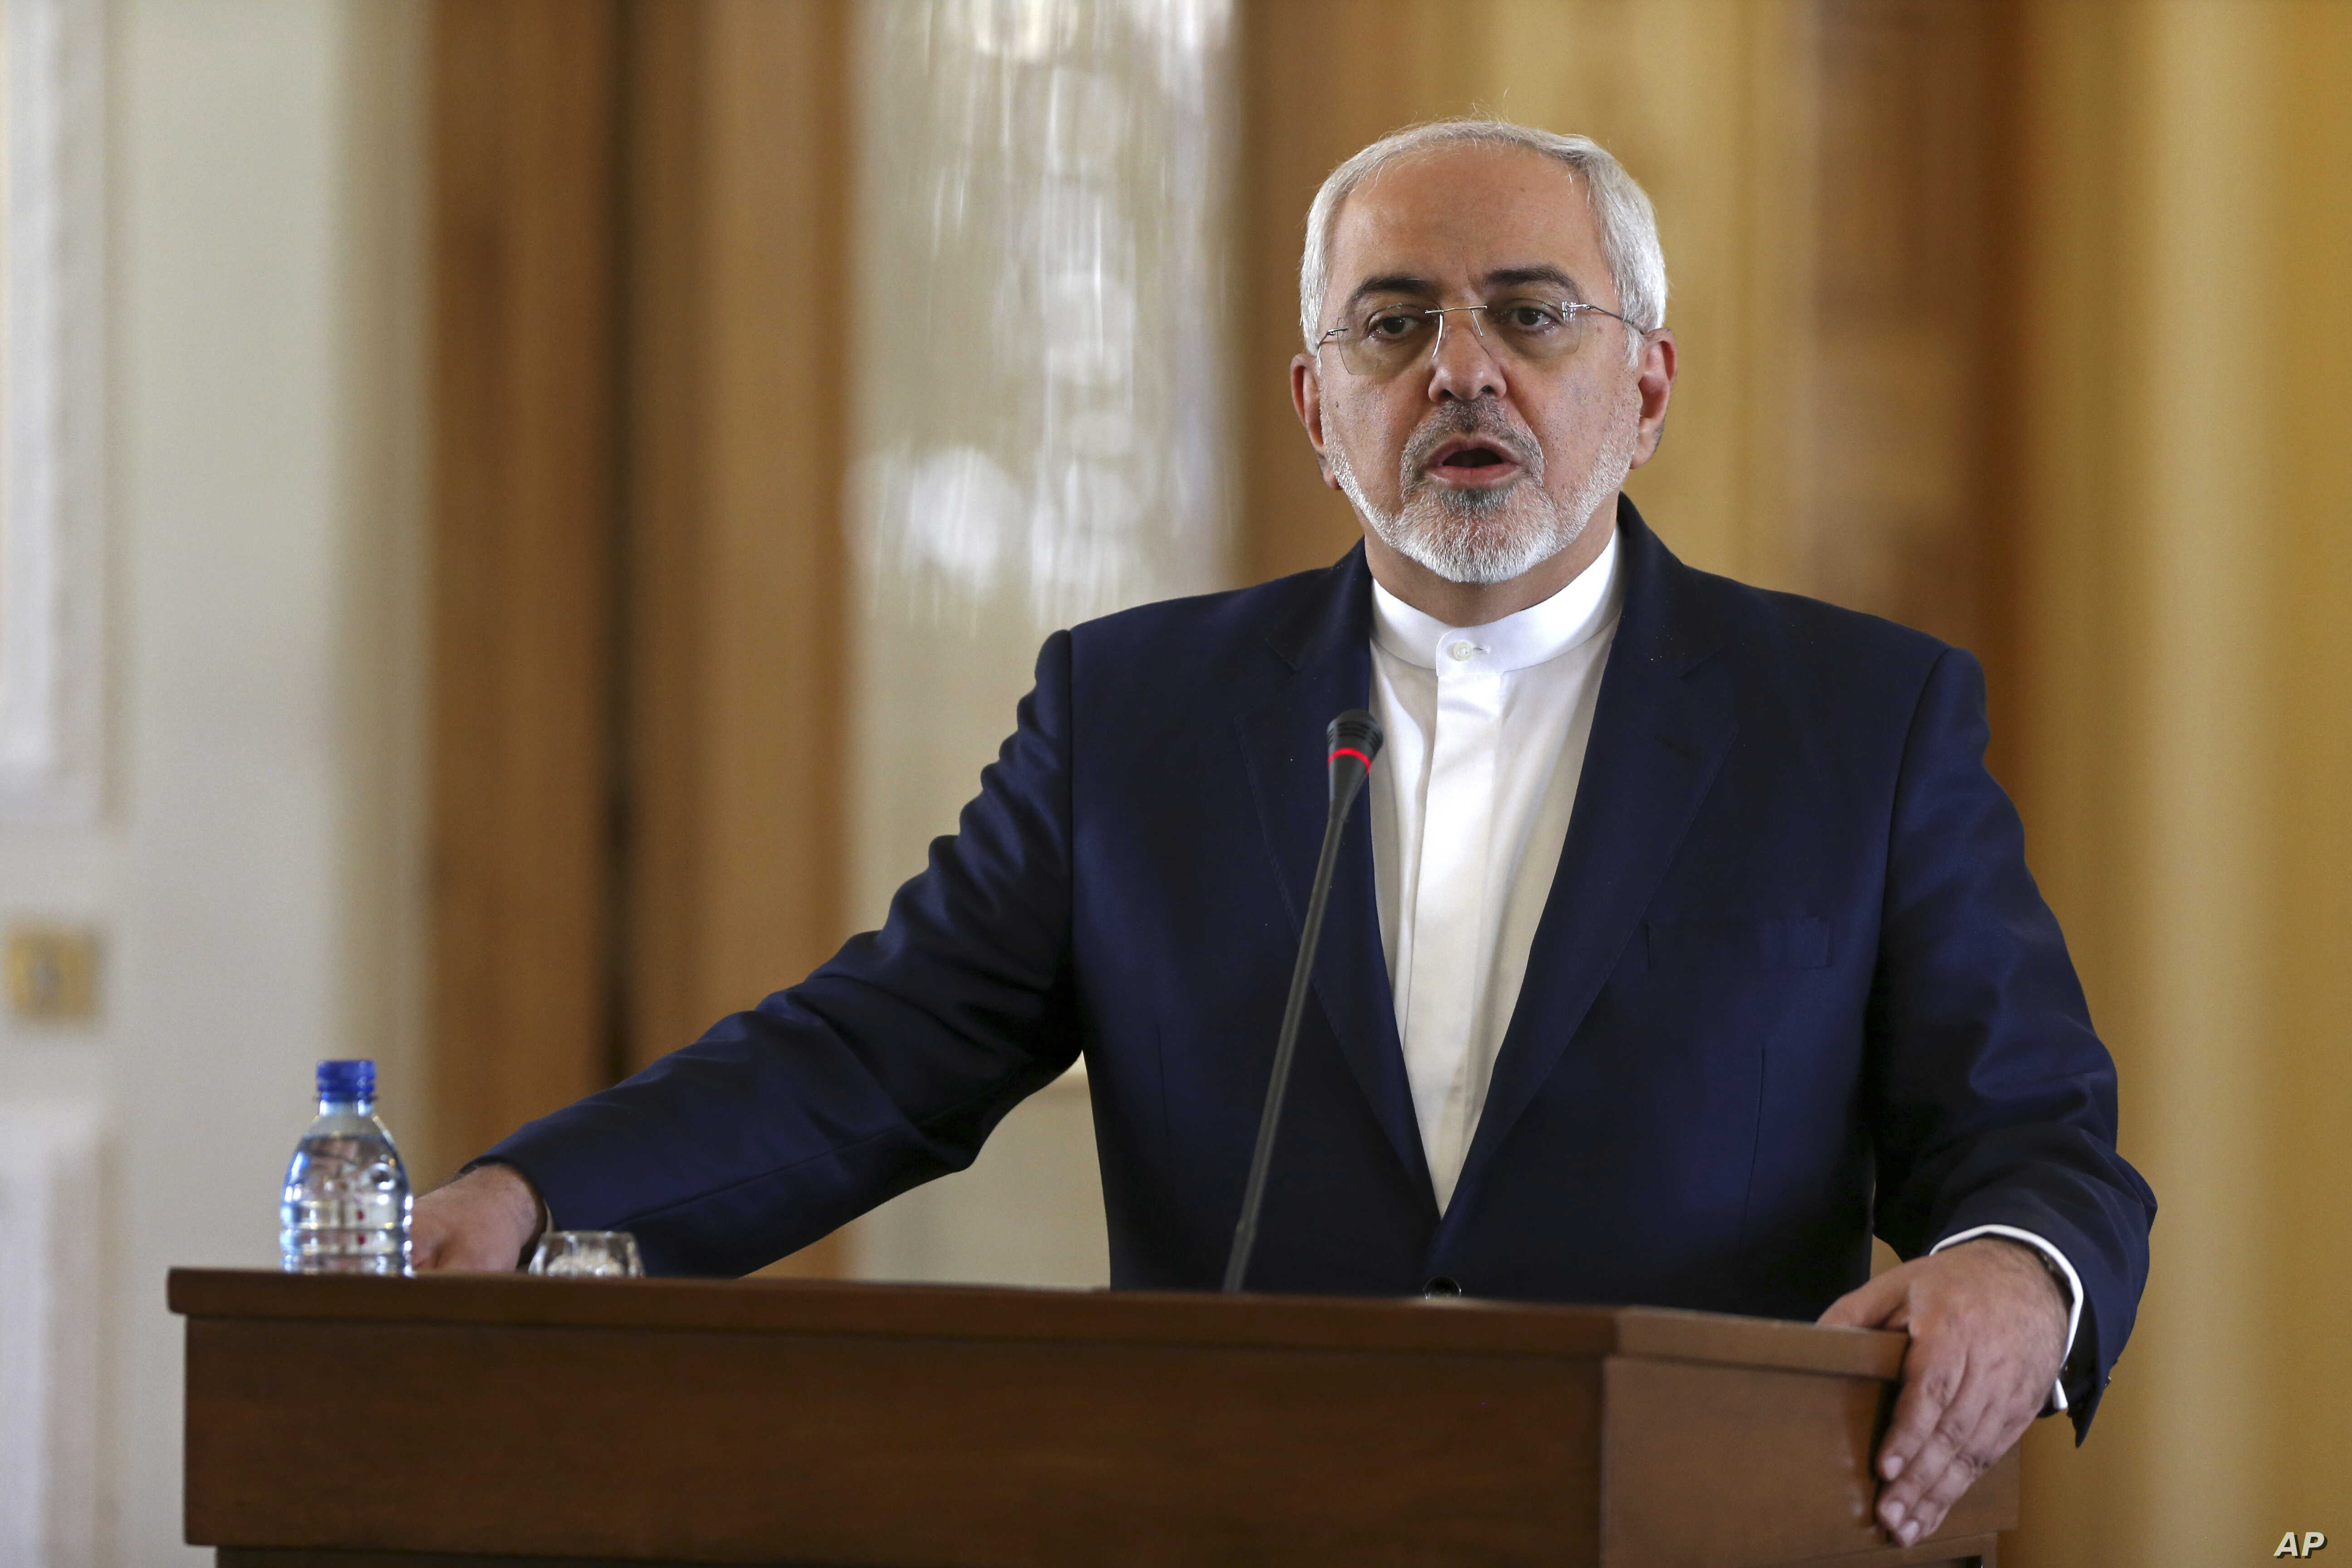 Iranian Foreign Minister Mohammad Javad Zarif speaks at a joint press conference with his French counterpart Jean-Marc Ayrault, in Tehran, Jan. 31, 2017. Zarif refused to confirm that the country conducted a missile test.